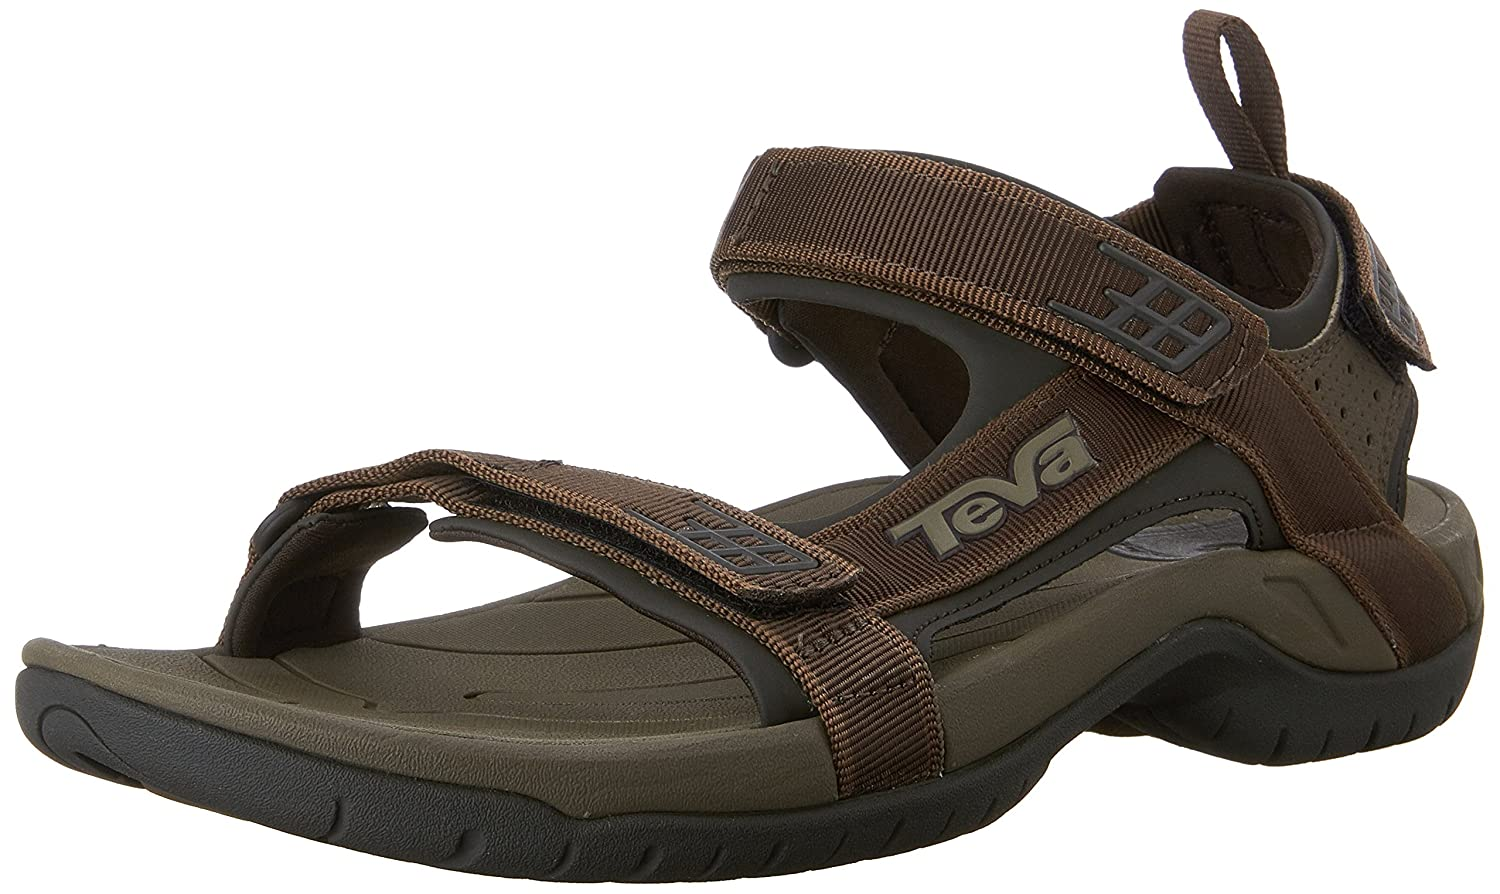 Teva Men's Tanza Sandal B003TU14T4 11.5 D(M) US|Brown